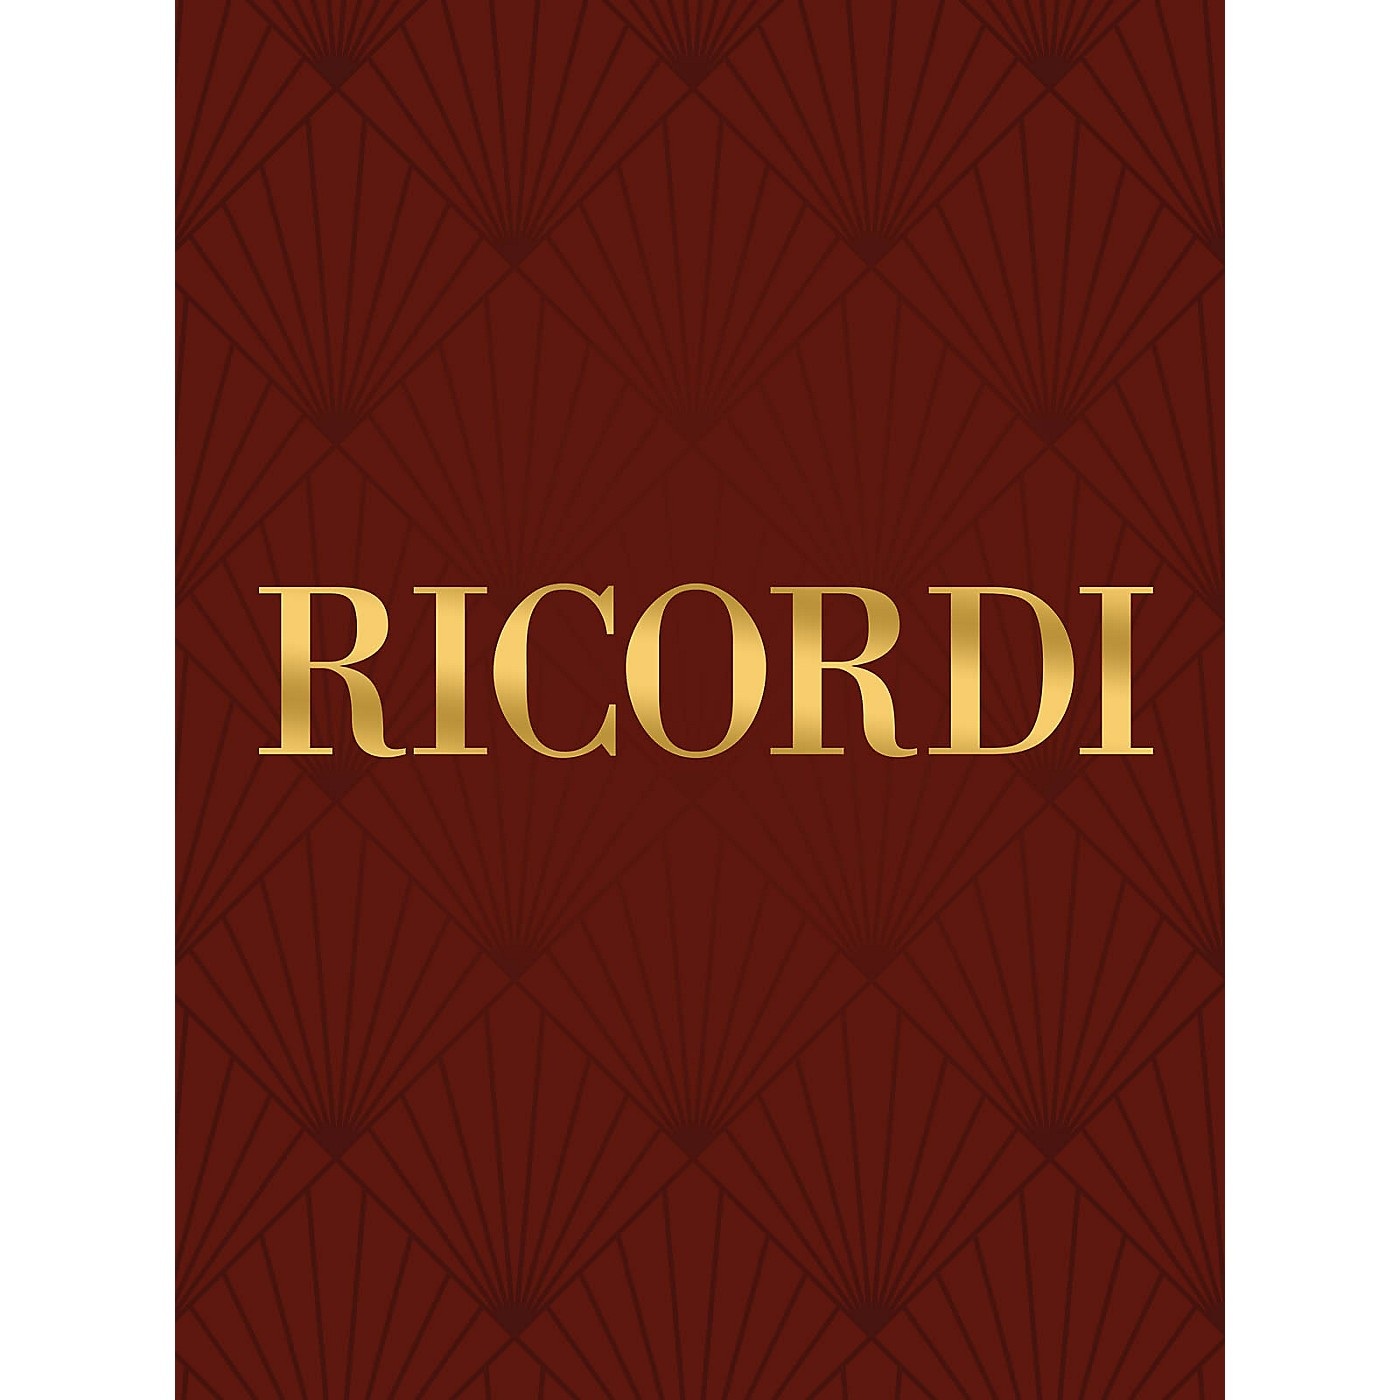 Ricordi La Fede (No. 1 of 3 Cori a 3 voce femminili) (Vocal Score) Composed by Gioachino Rossini thumbnail